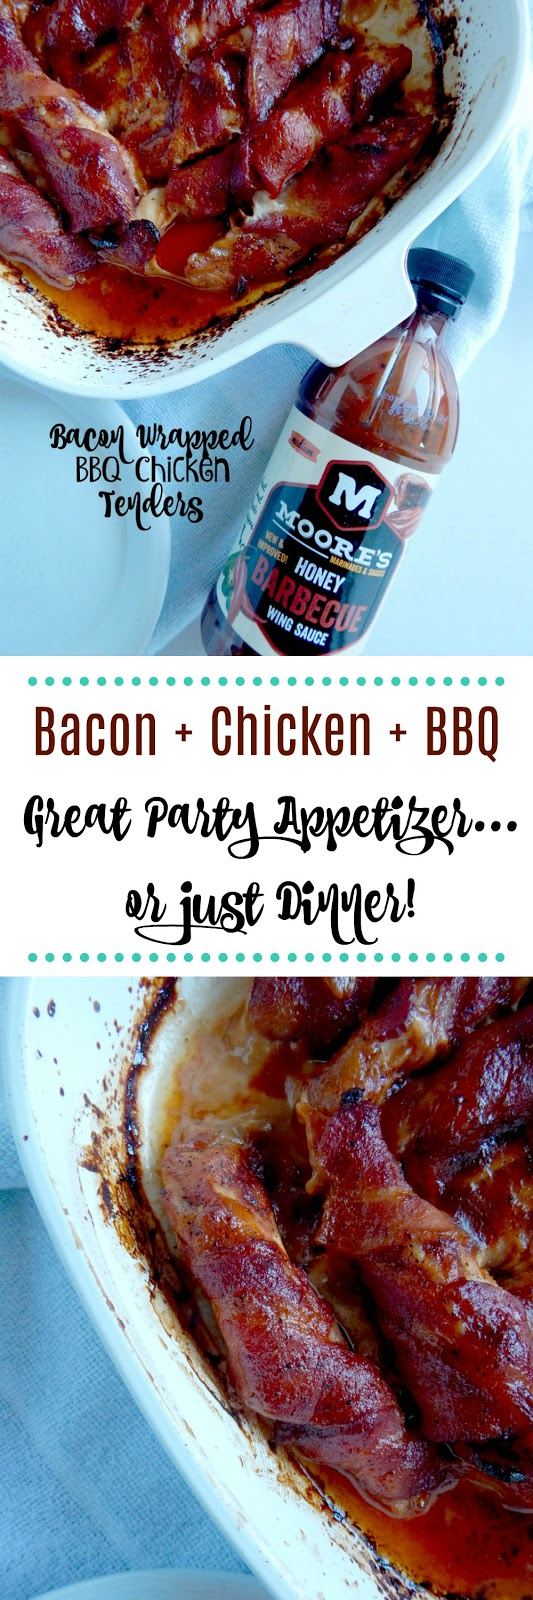 Bacon Wrapped BBQ Chicken Tenders...the perfect party appetizer or great for dinner alone!  Sweet, spicy, salty and sticky chicken wrapped in bacon and slathered with a sweet glaze. (sweetandsavoryfood.com)